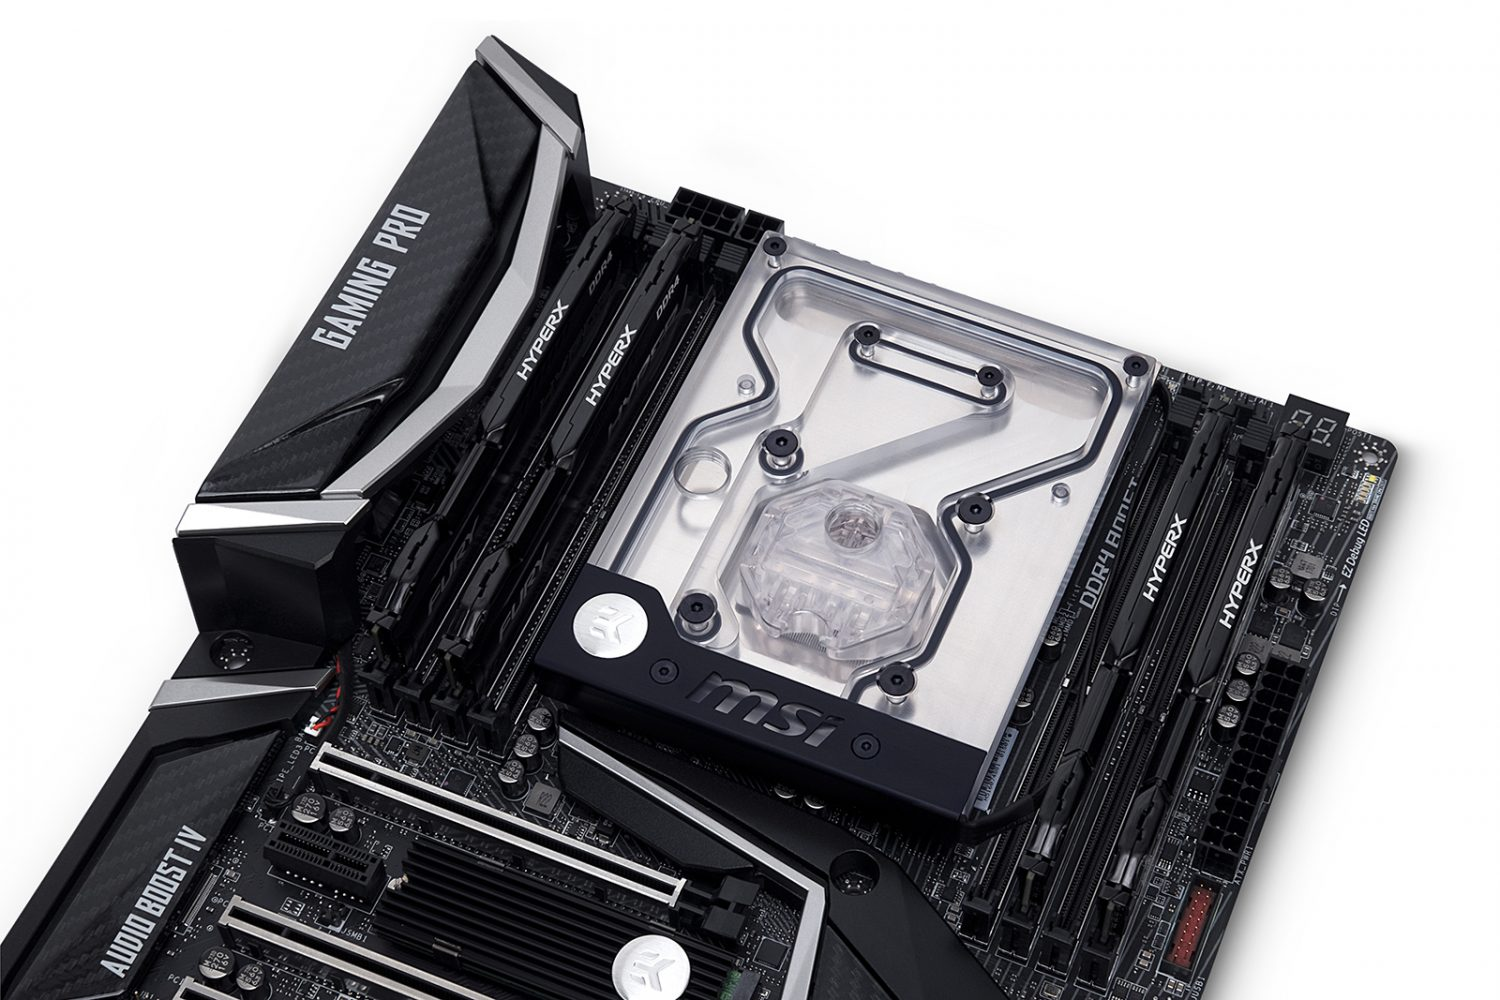 RGB Monoblocks for MSI X299 Motherboards